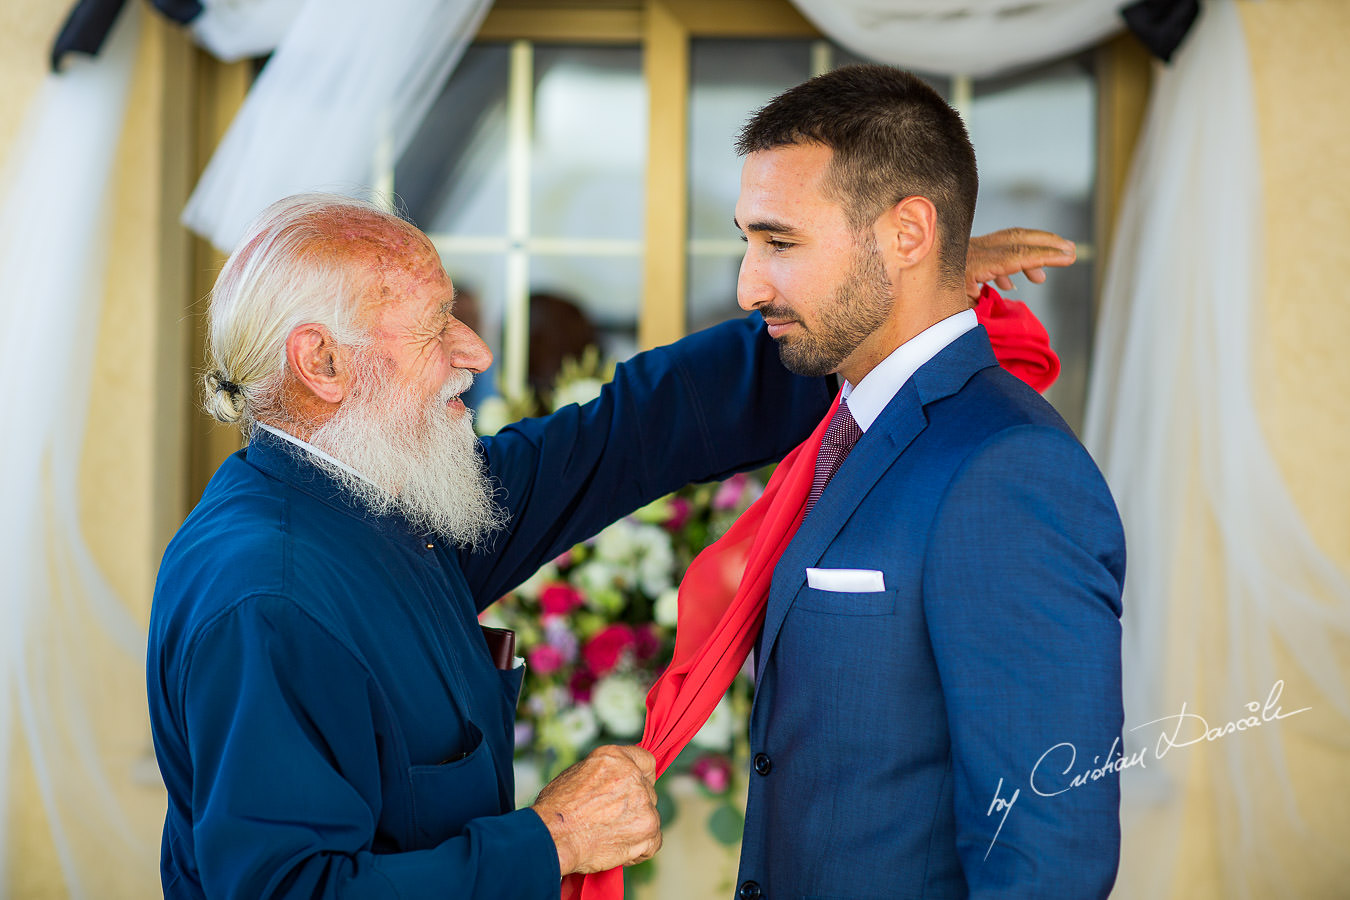 The grandfather of the groom, also the priest`s village is blessing him with the red scarf, moments captured by Cyprus Wedding Photographer Cristian Dascalu at a beautiful wedding in Larnaka, Cyprus.